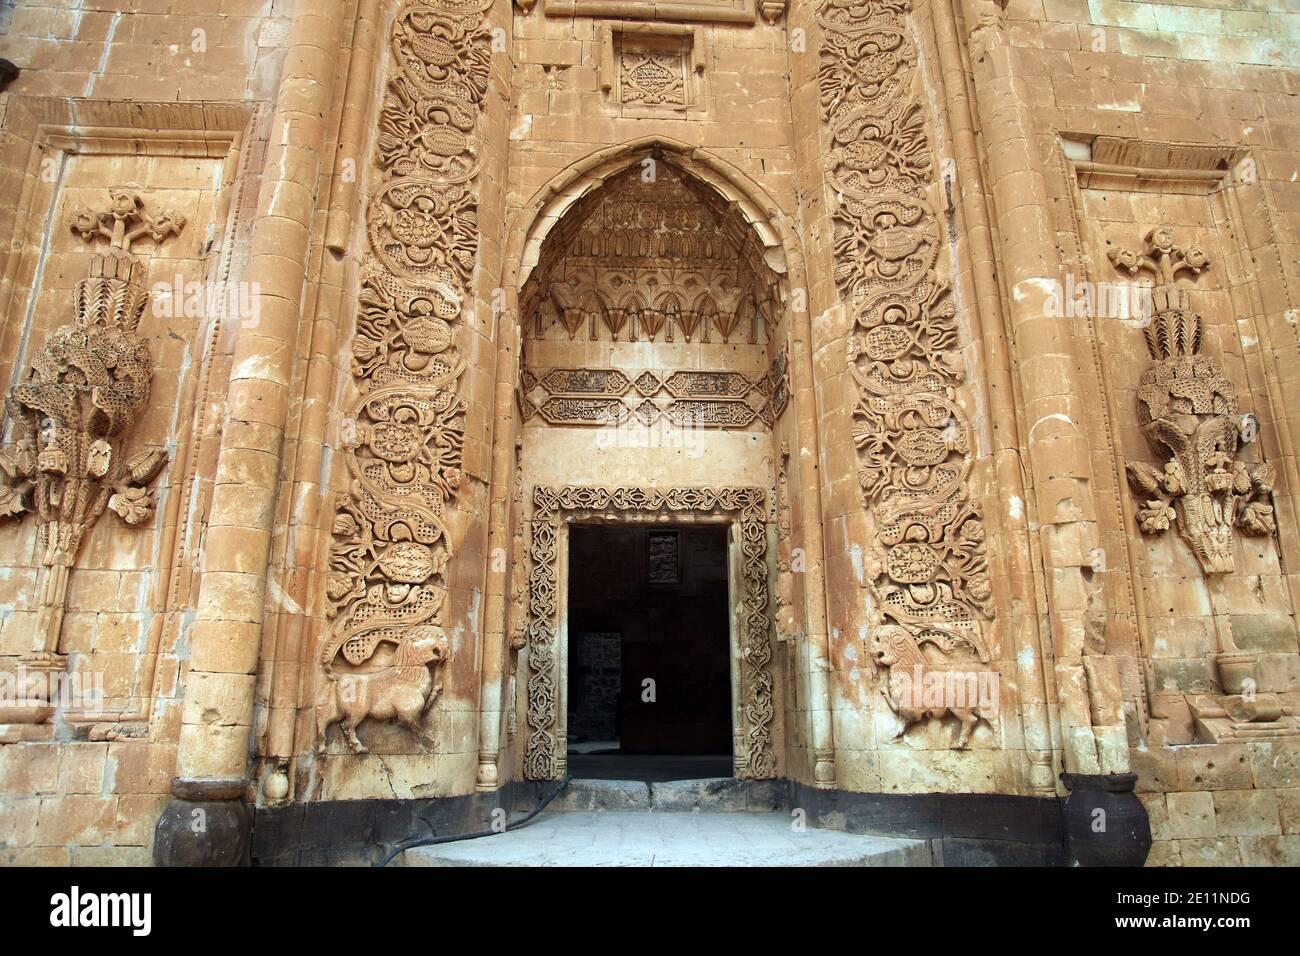 Ishak Pasha Palace entrance at Dogubeyazi in Agri, Turkey. The palace is built on a hill at the side of a mountain 5 km east of Dogubeyazit. Stock Photo